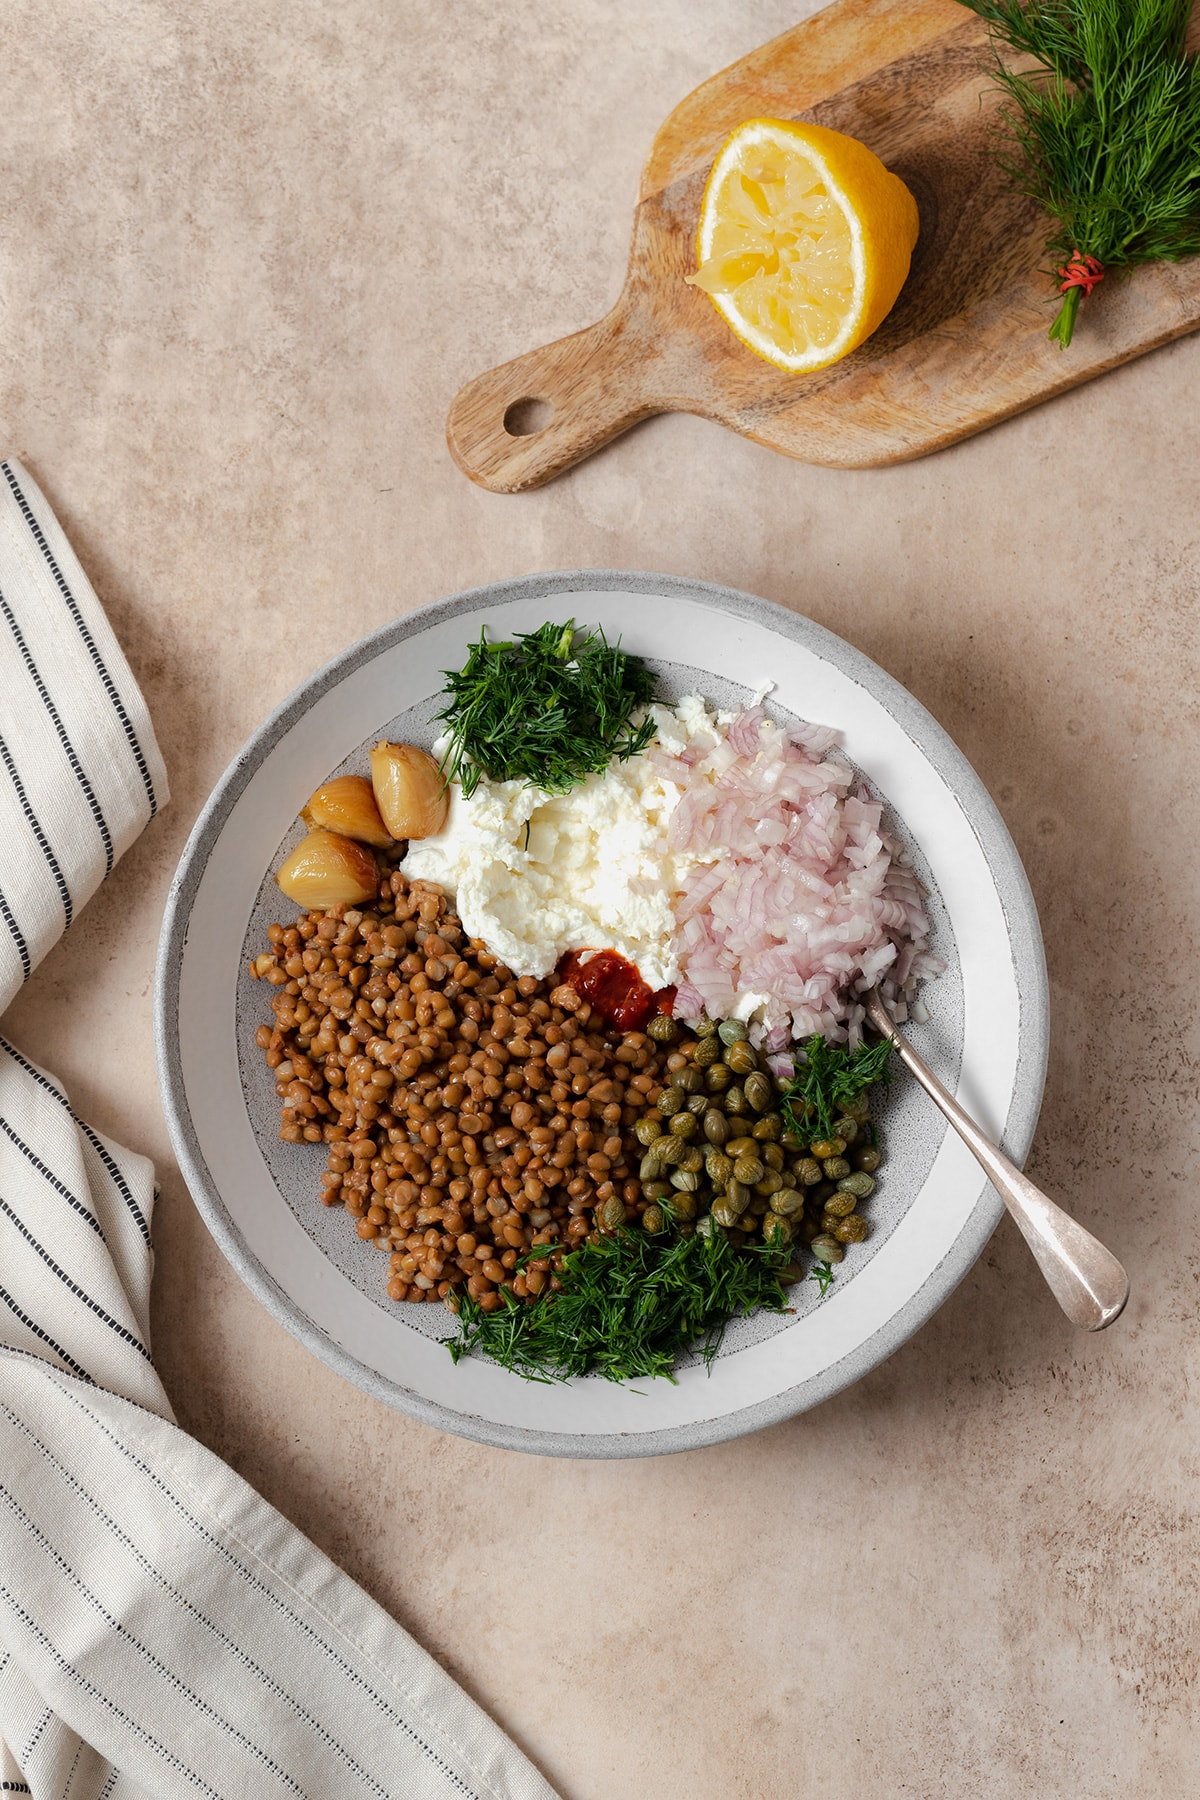 Ingredients shown in a grey bowl. Cooked brown lentils, capers, olive oil, half a lemon, a block of soft goat cheese, half a shallot, a bunch of fresh dill, roasted garlic, and garlic chili sauce.